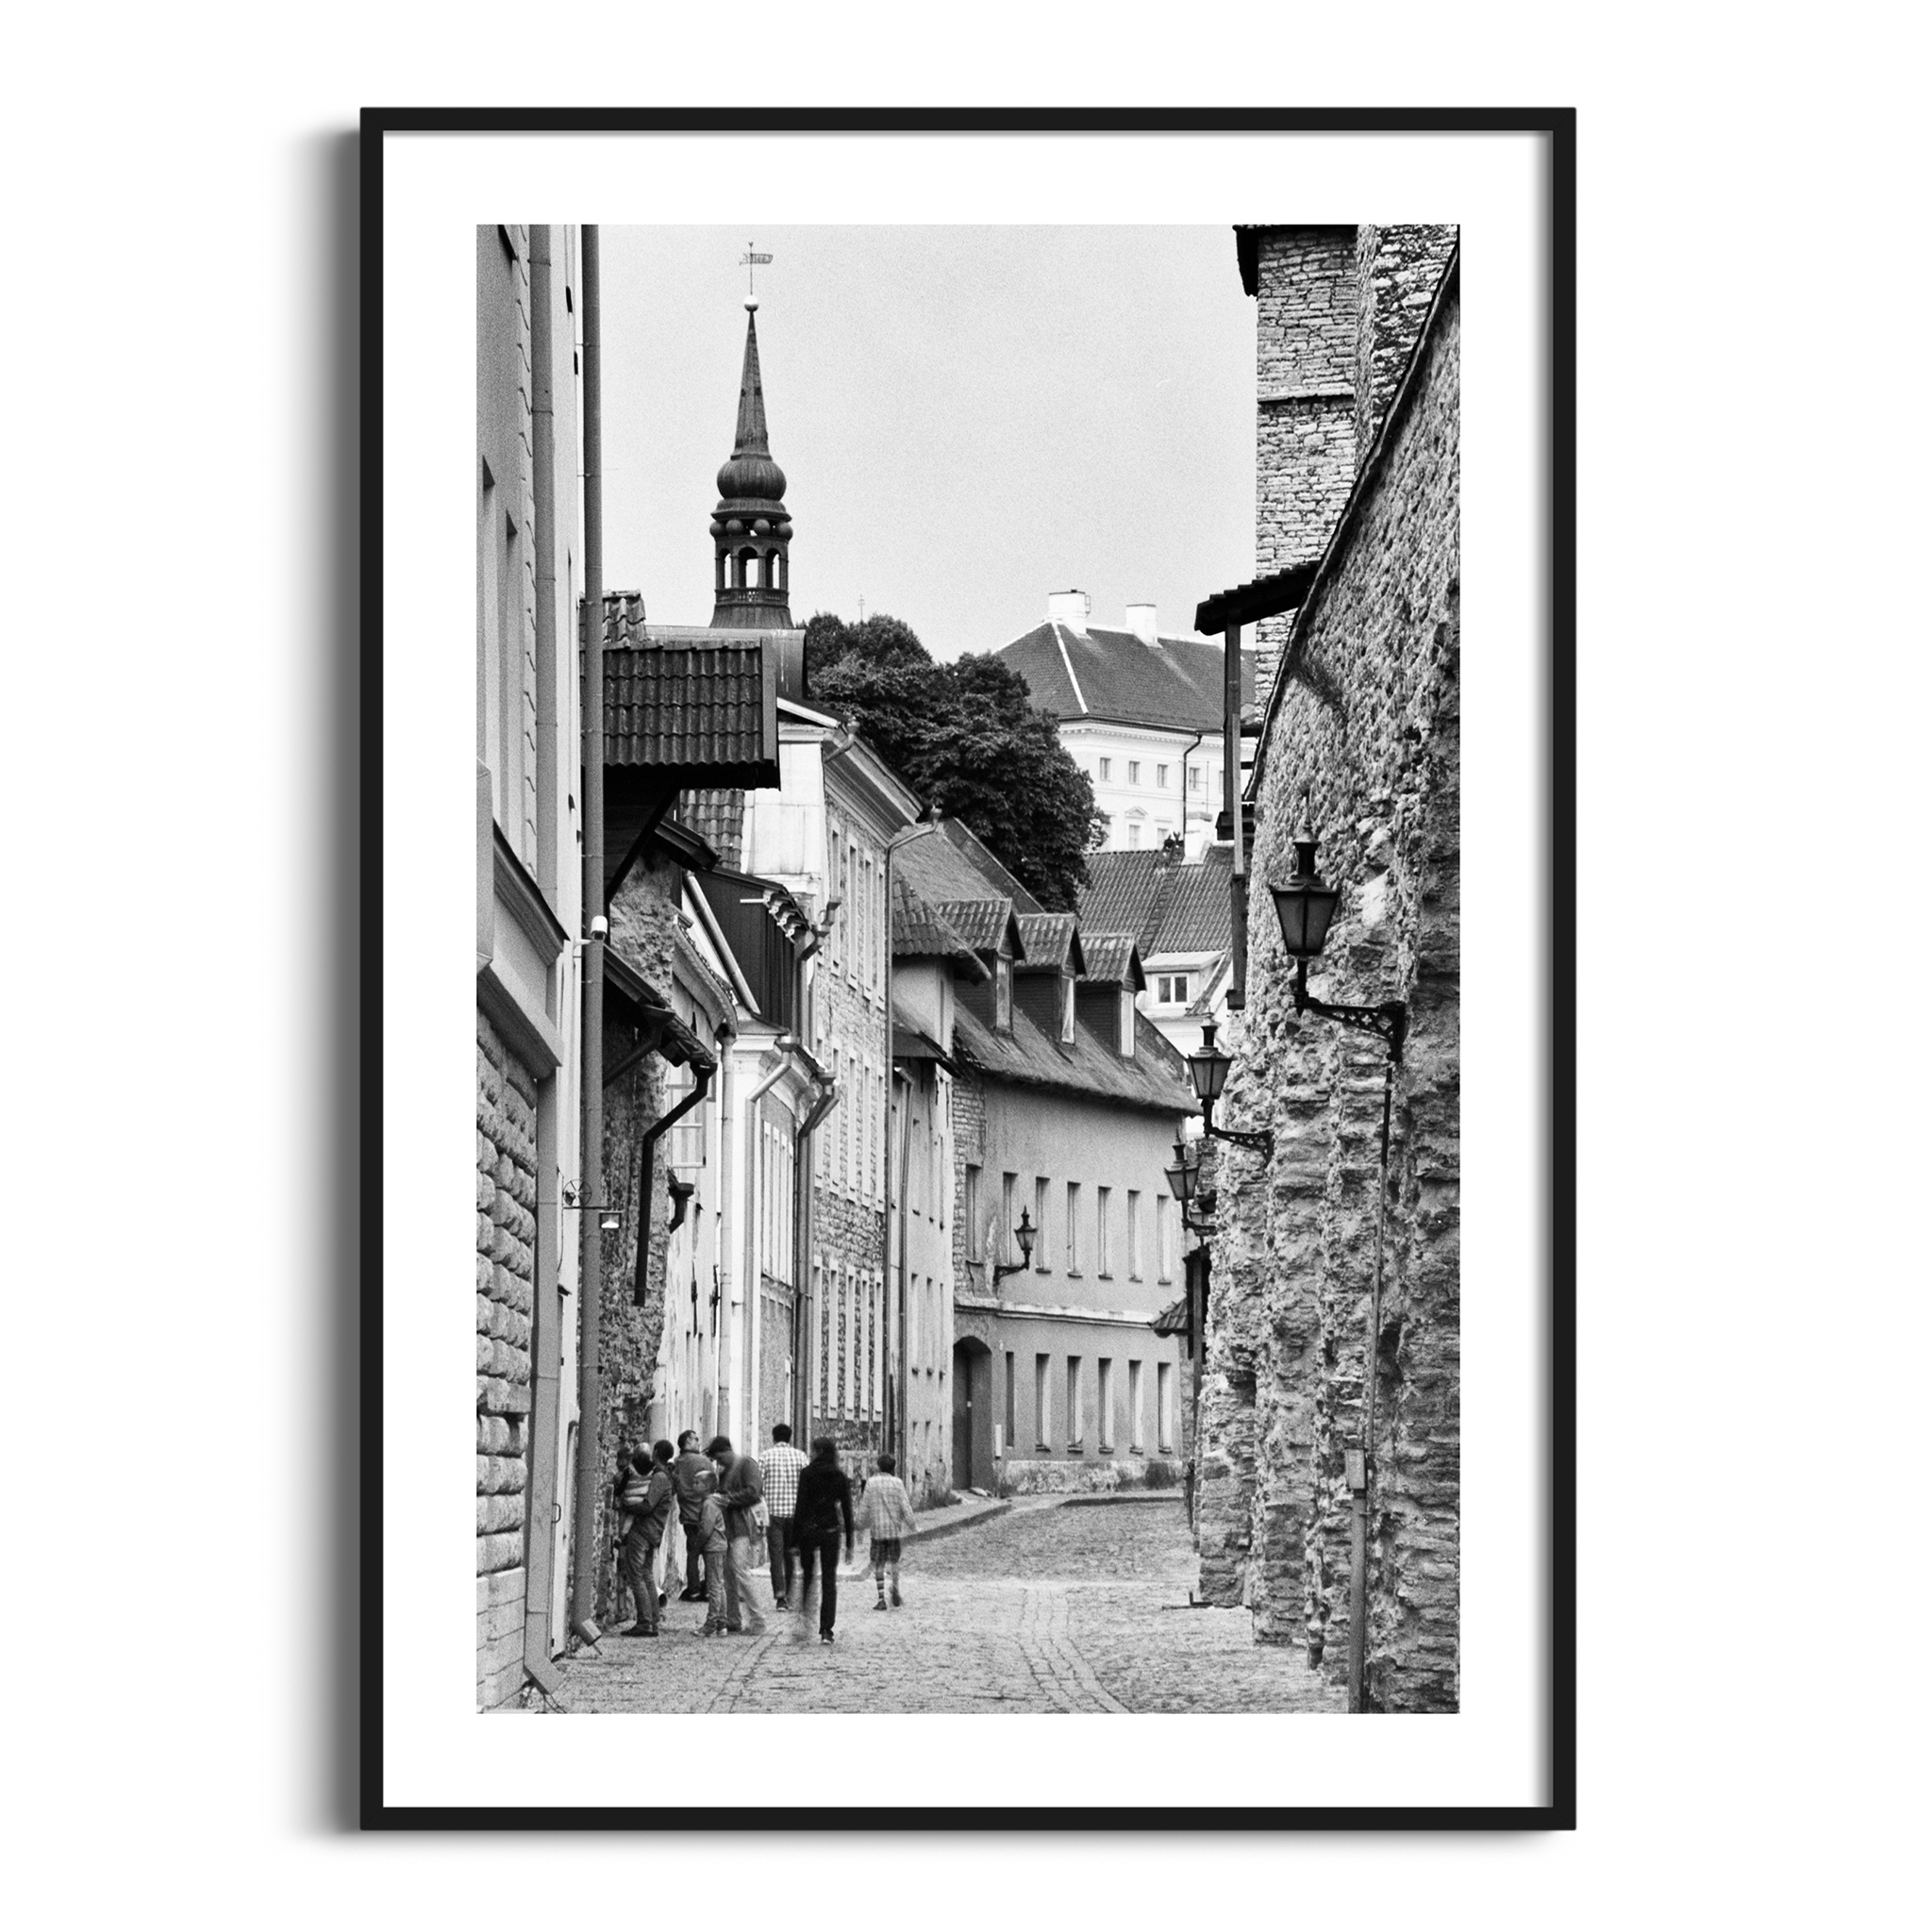 Laboratooriumi Street print in black frame with border